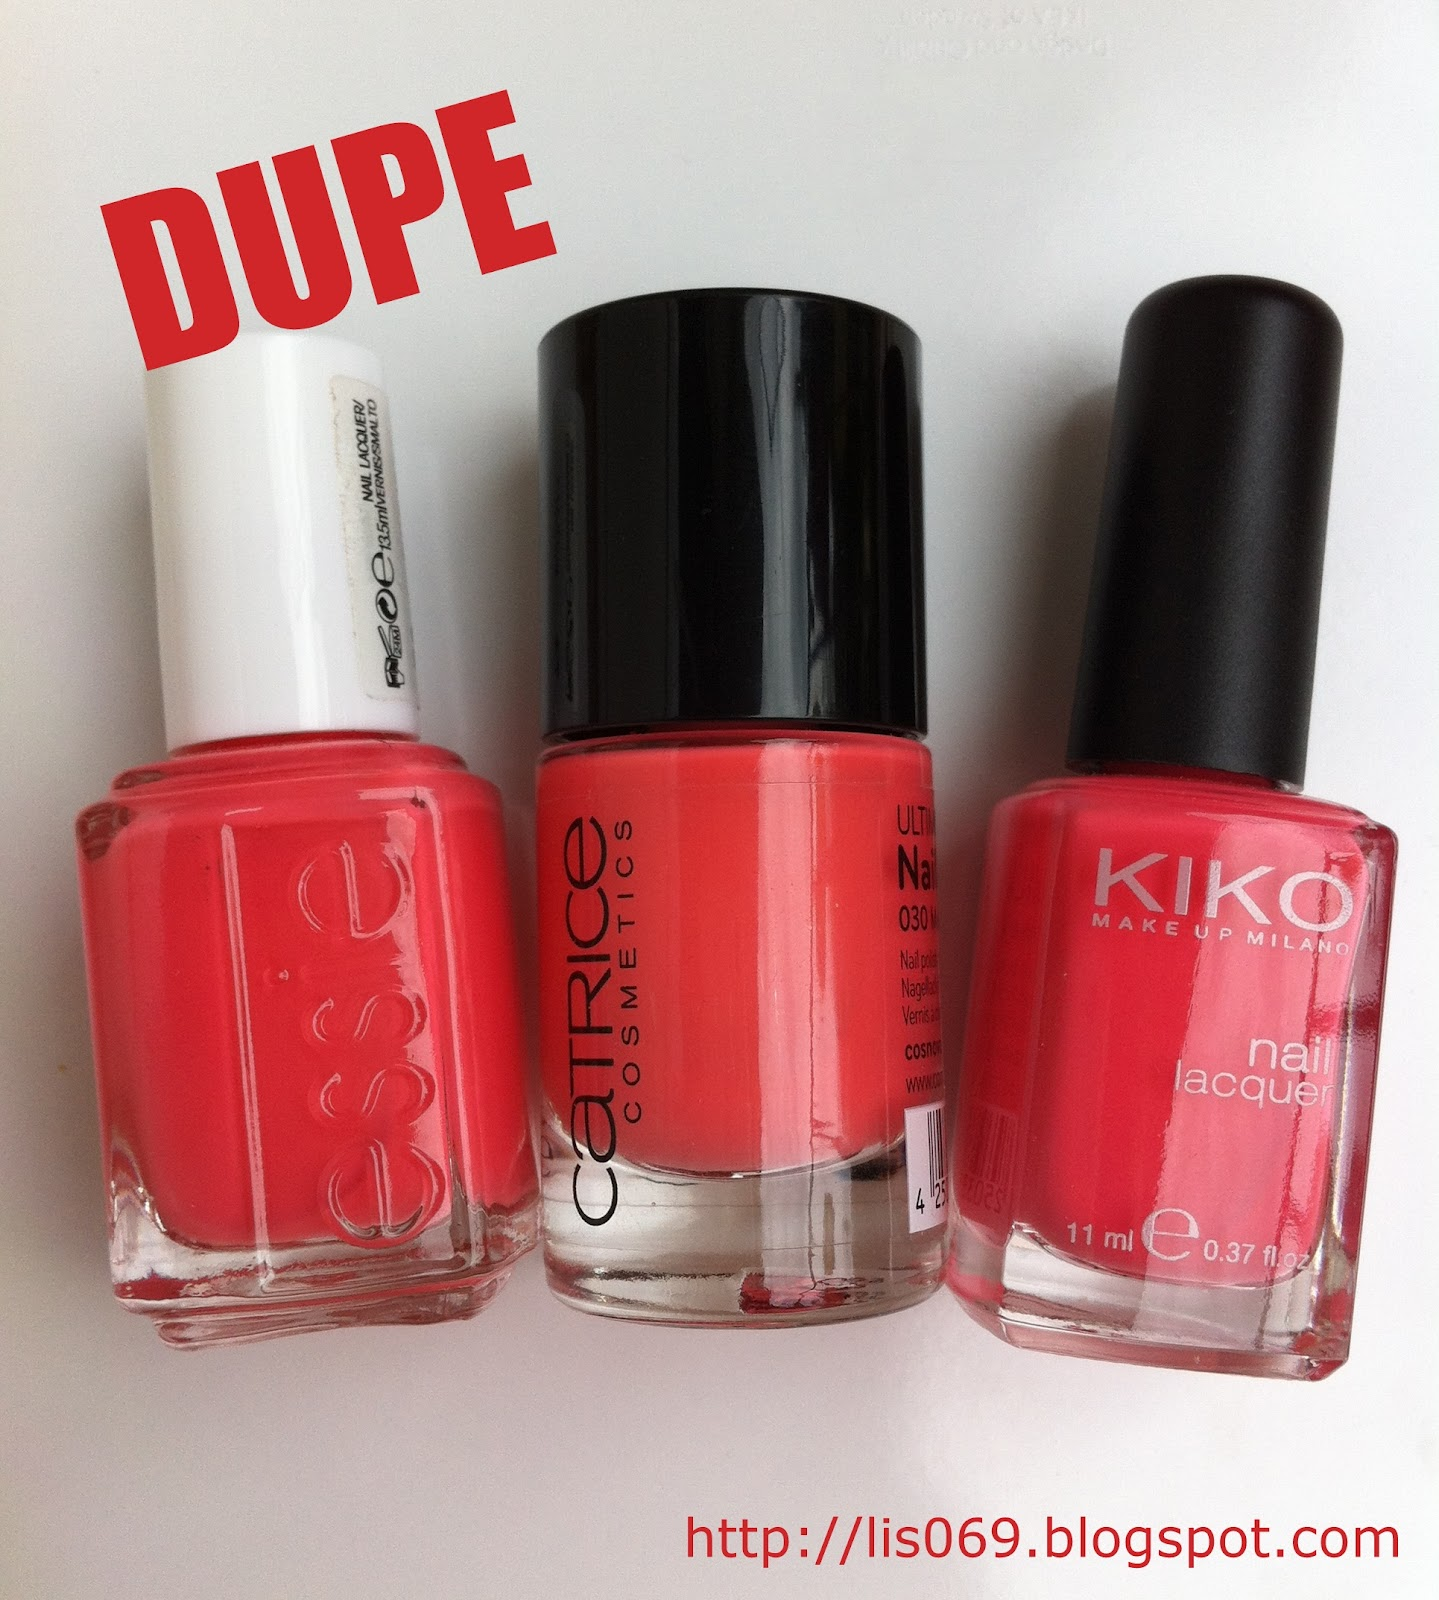 lis069 beautylifestyleampmore dupe essie cute as a button